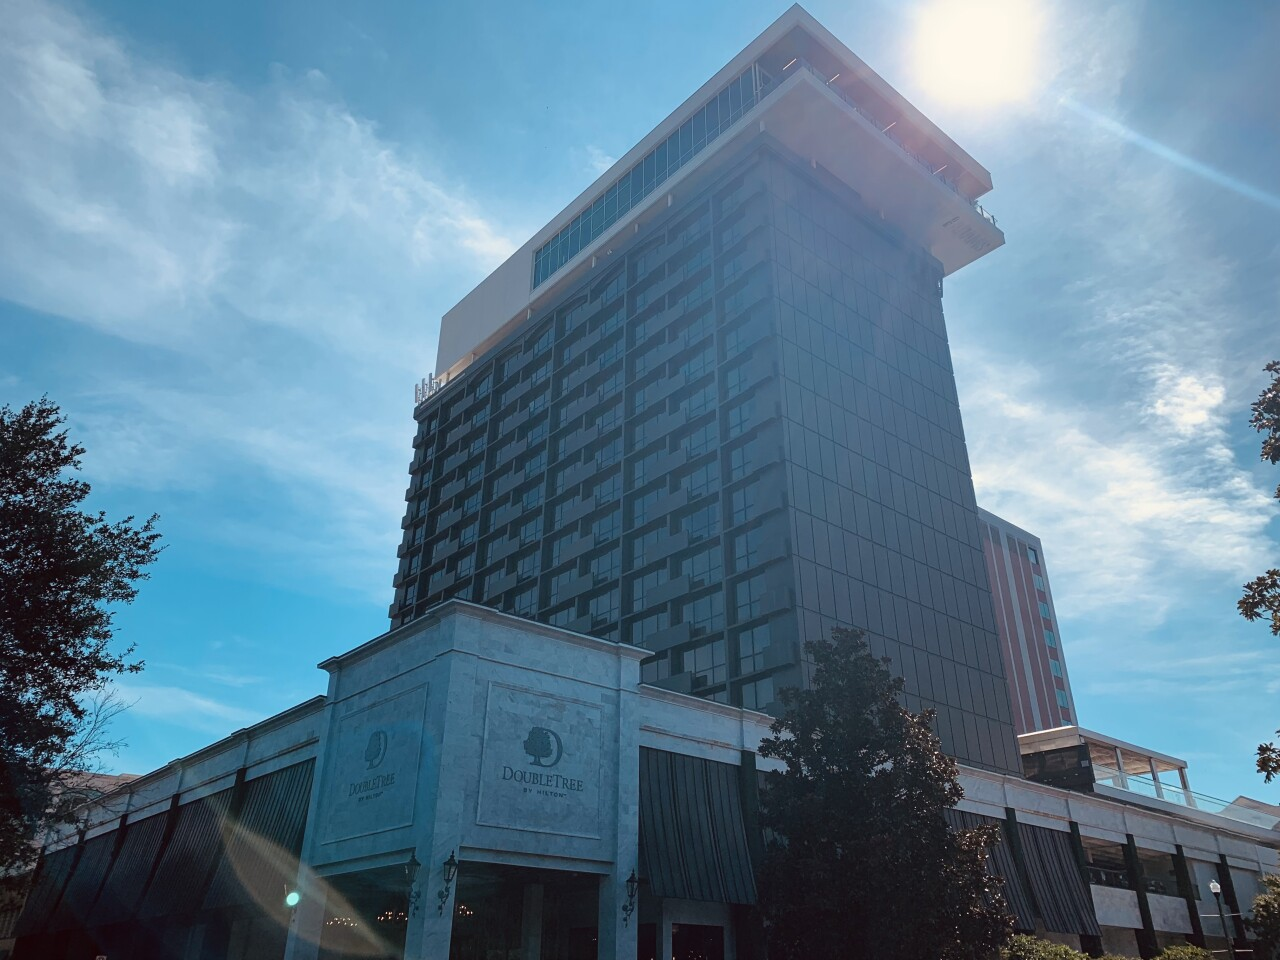 DoubleTree Hotel downtown